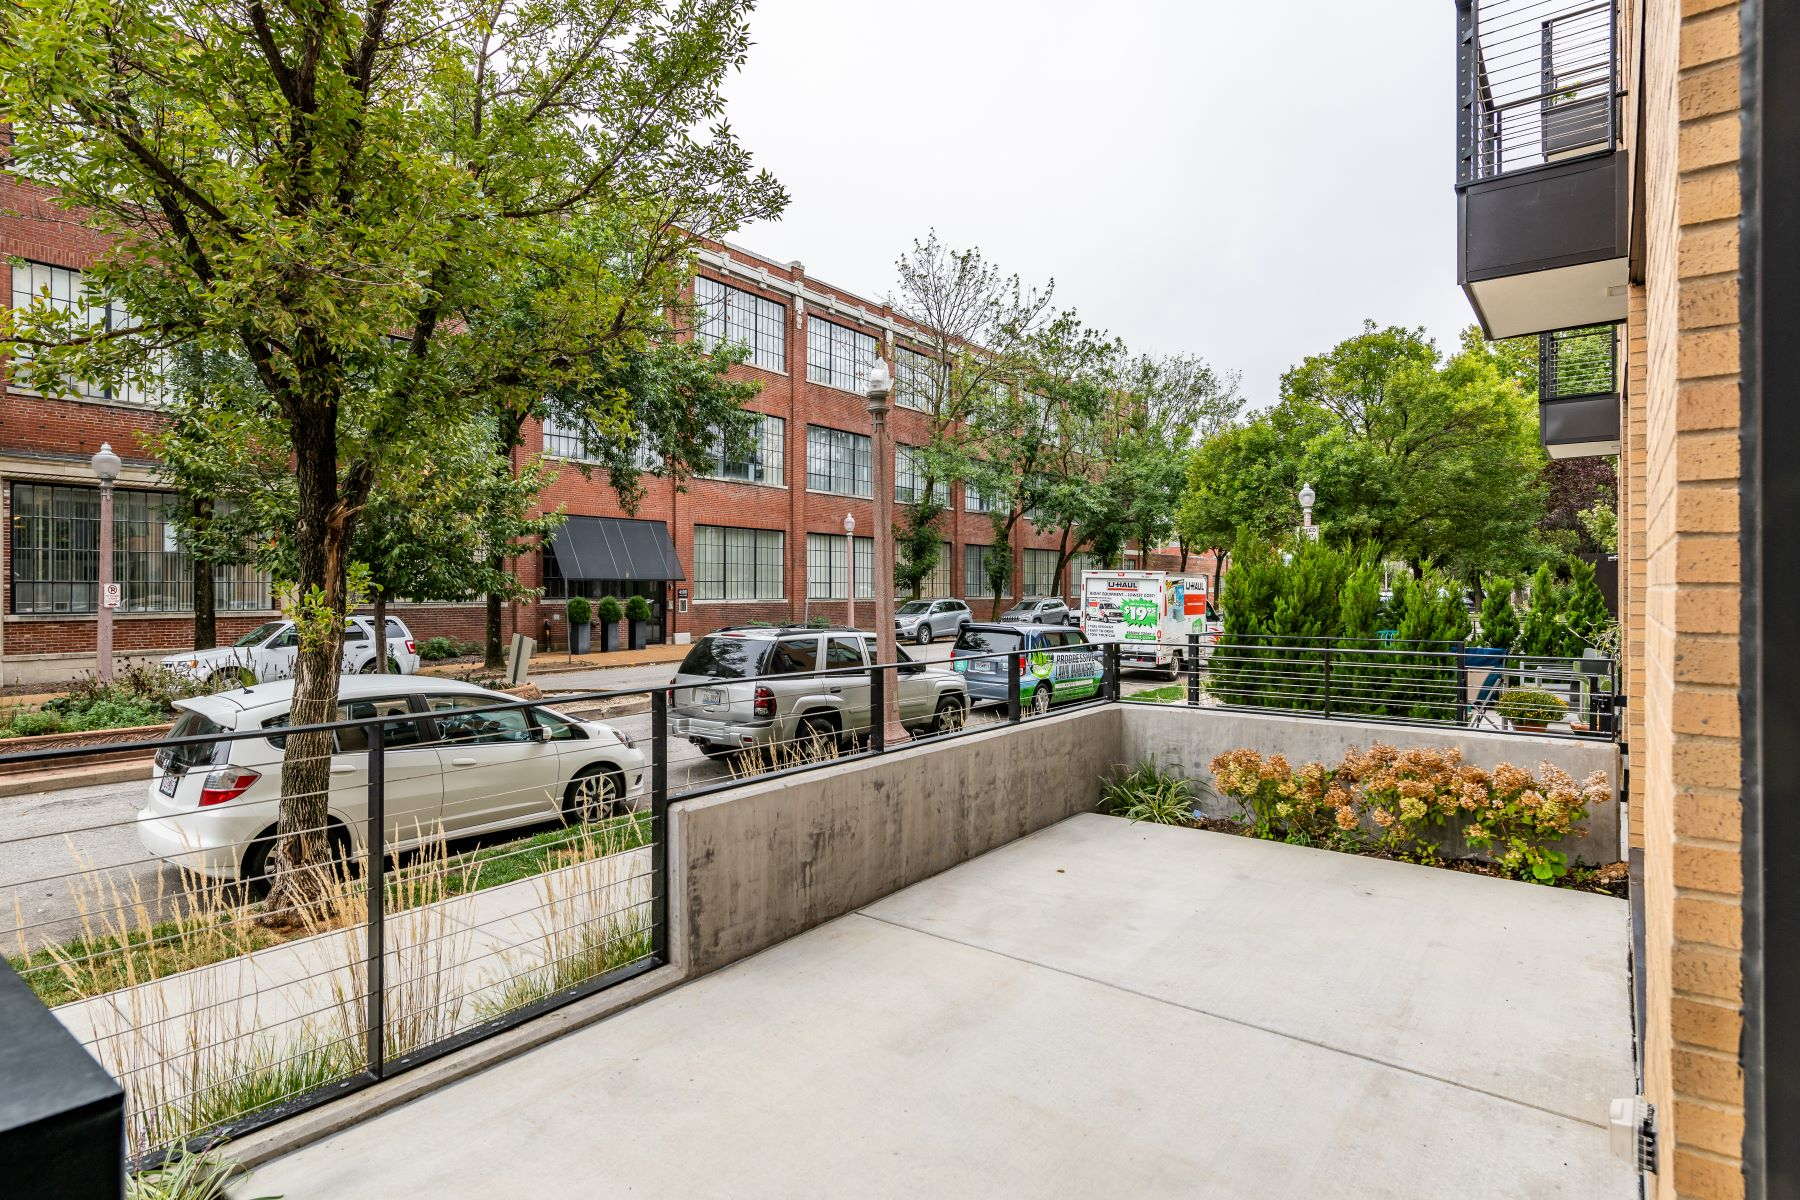 Additional photo for property listing at 4101 Laclede Ave # 104 St. Louis, Missouri 63108 United States